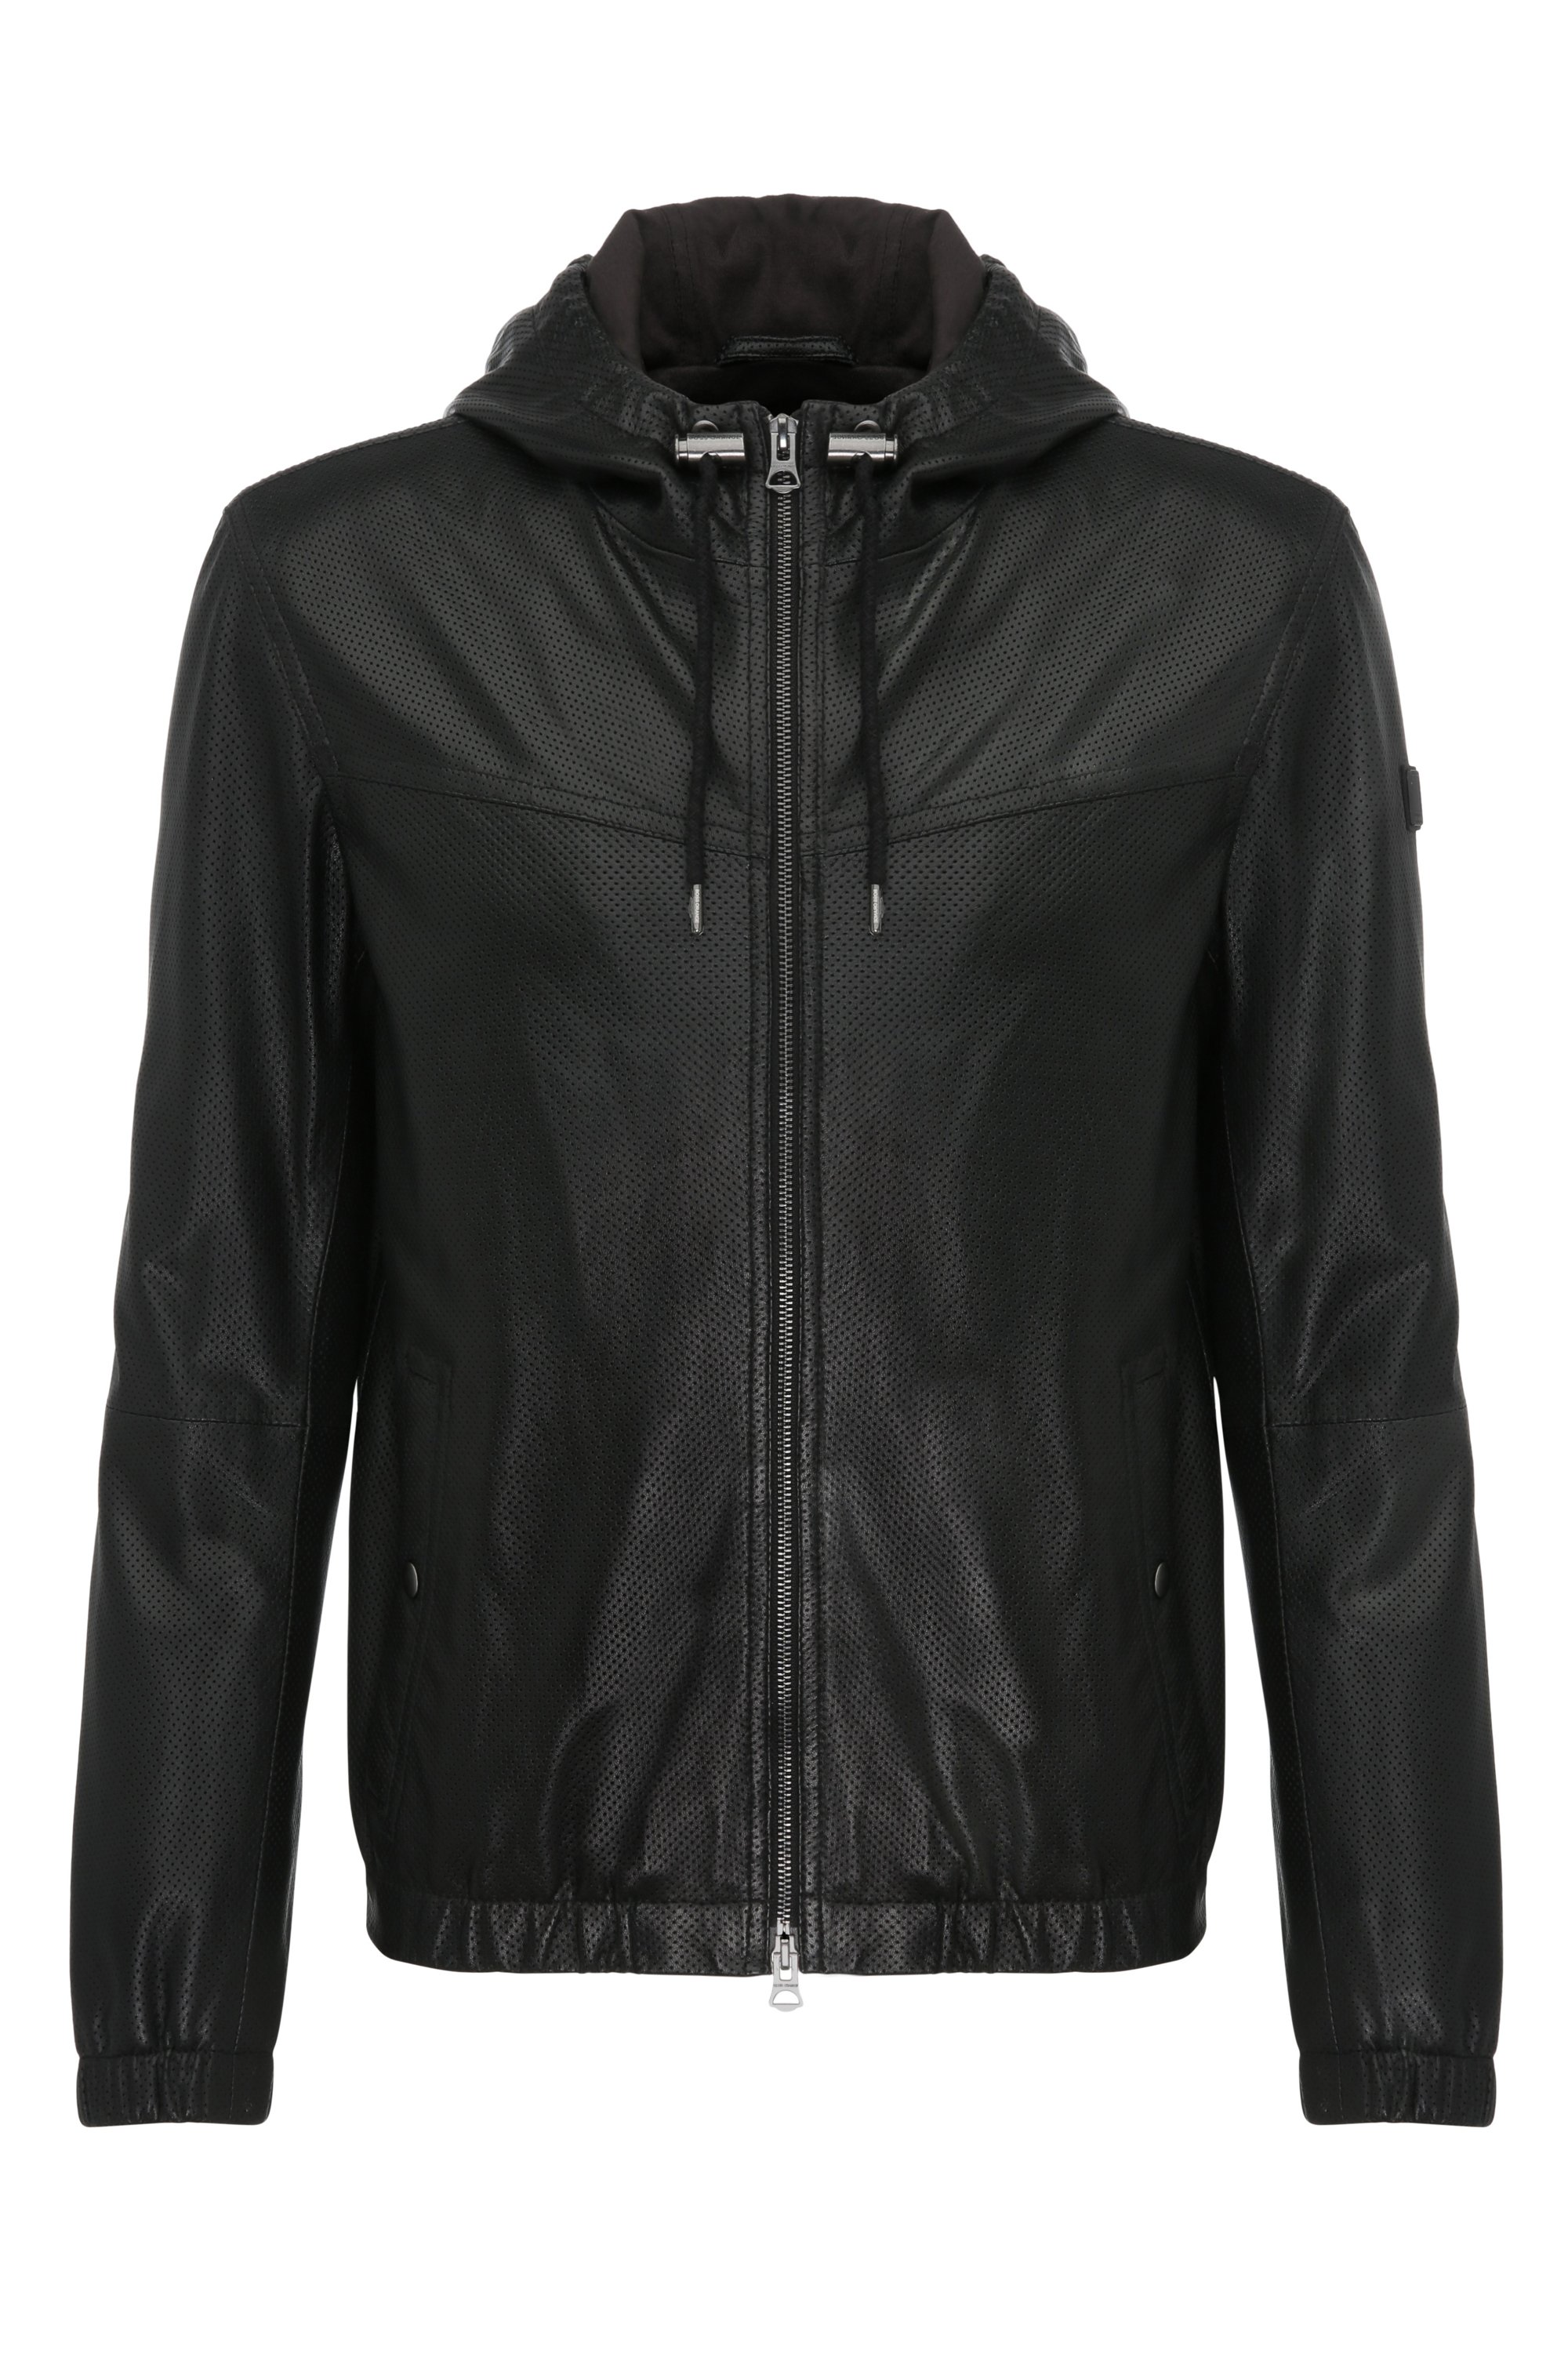 Lambskin Perforated Hooded Blouson Jacket | Jainee, Black